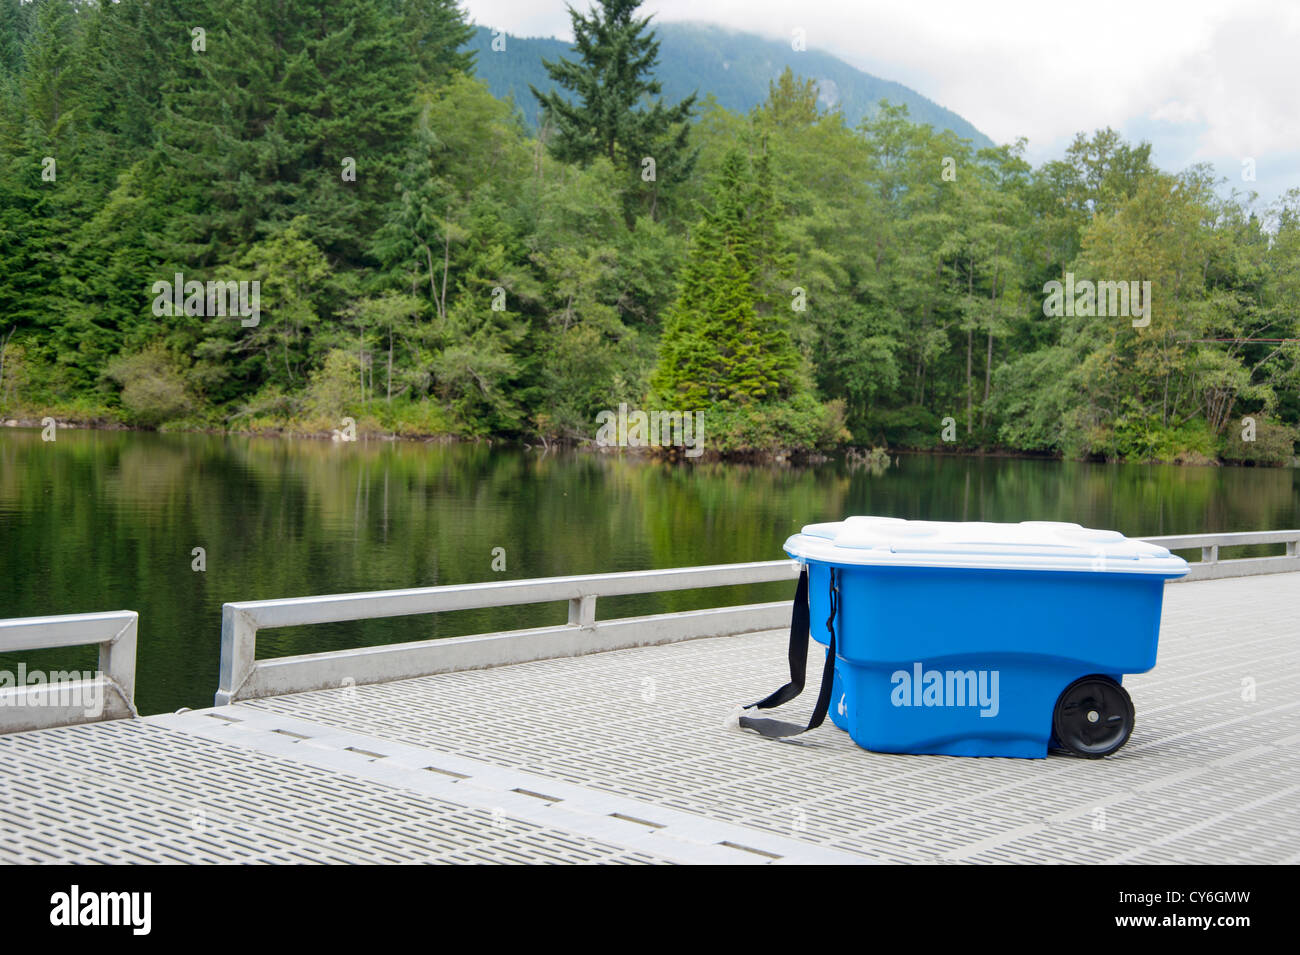 Cooler on a dock by a lake - Stock Image